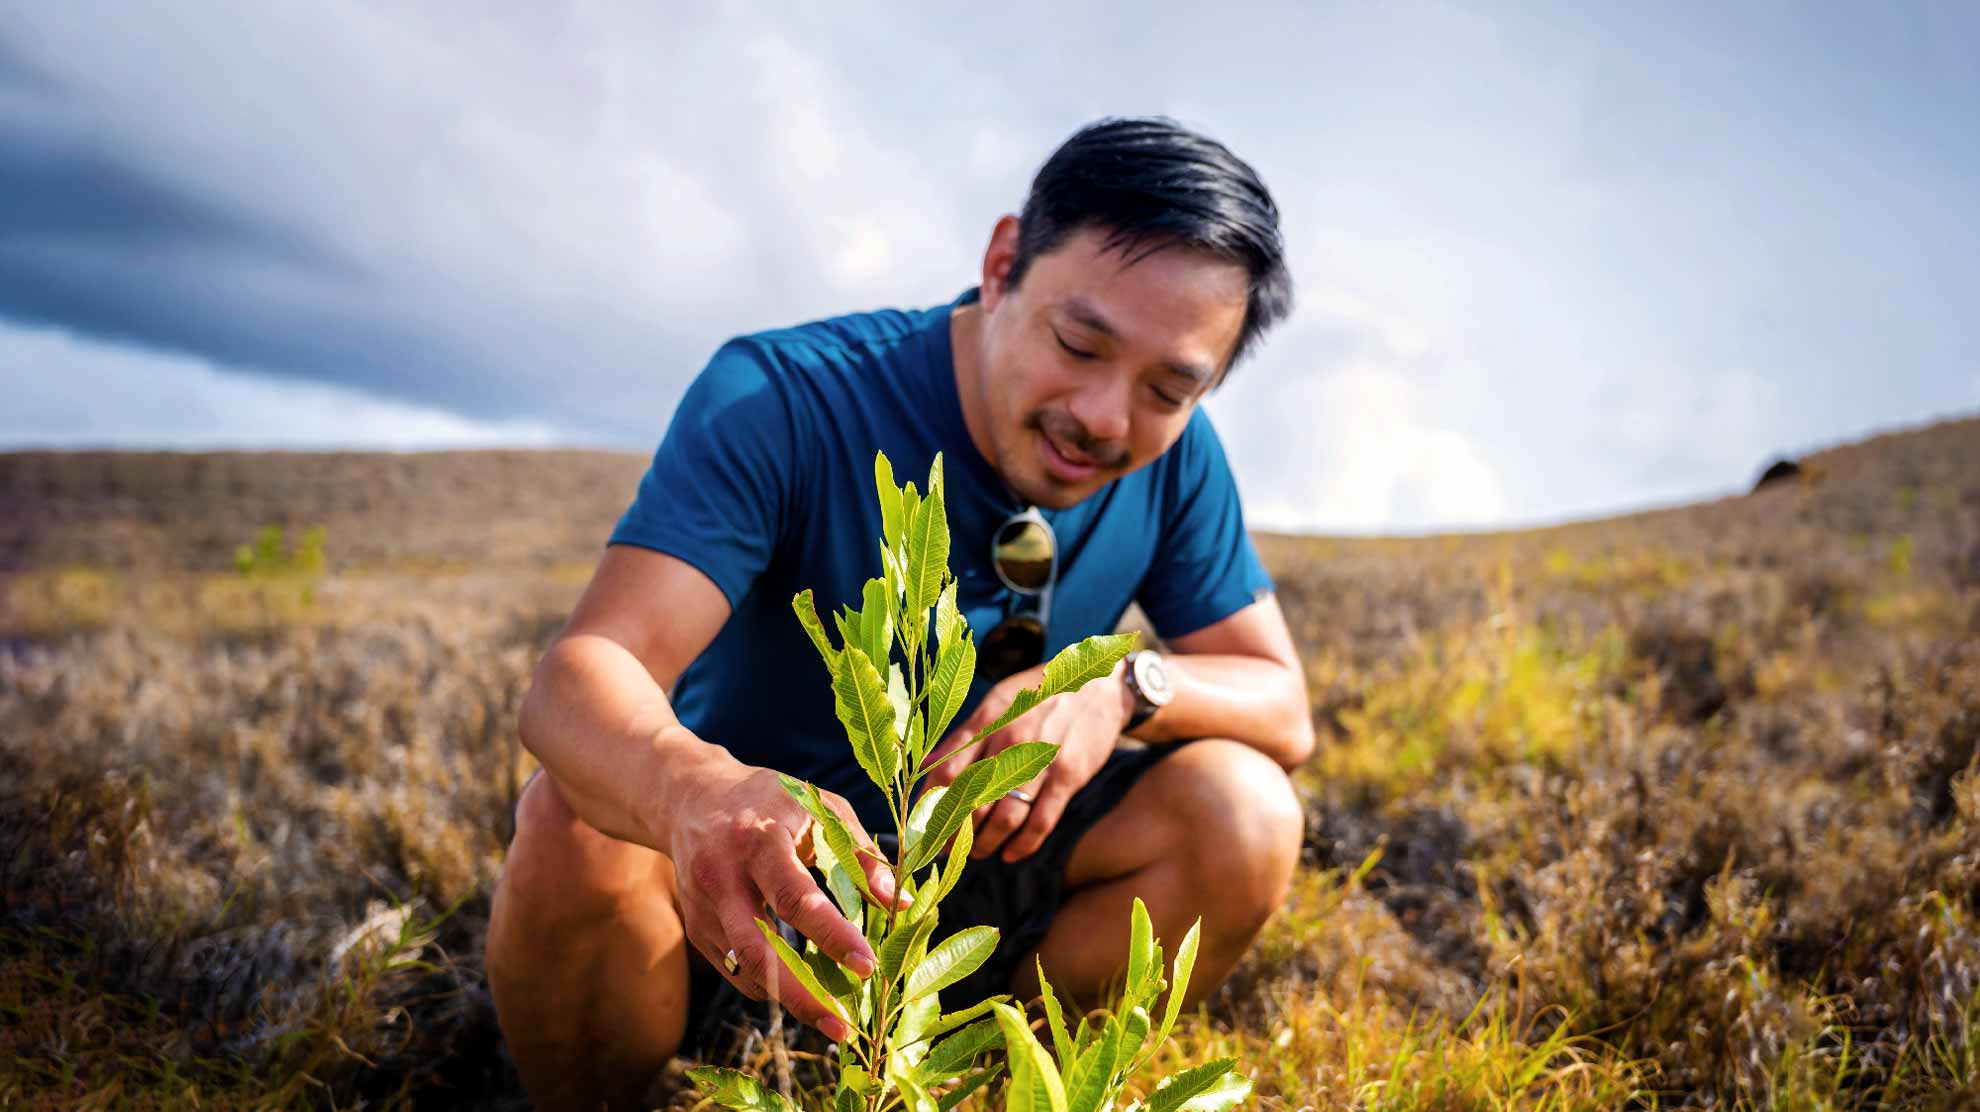 From tech to trees: The ex-CEO turning his Silicon Valley skills to mass reforestation